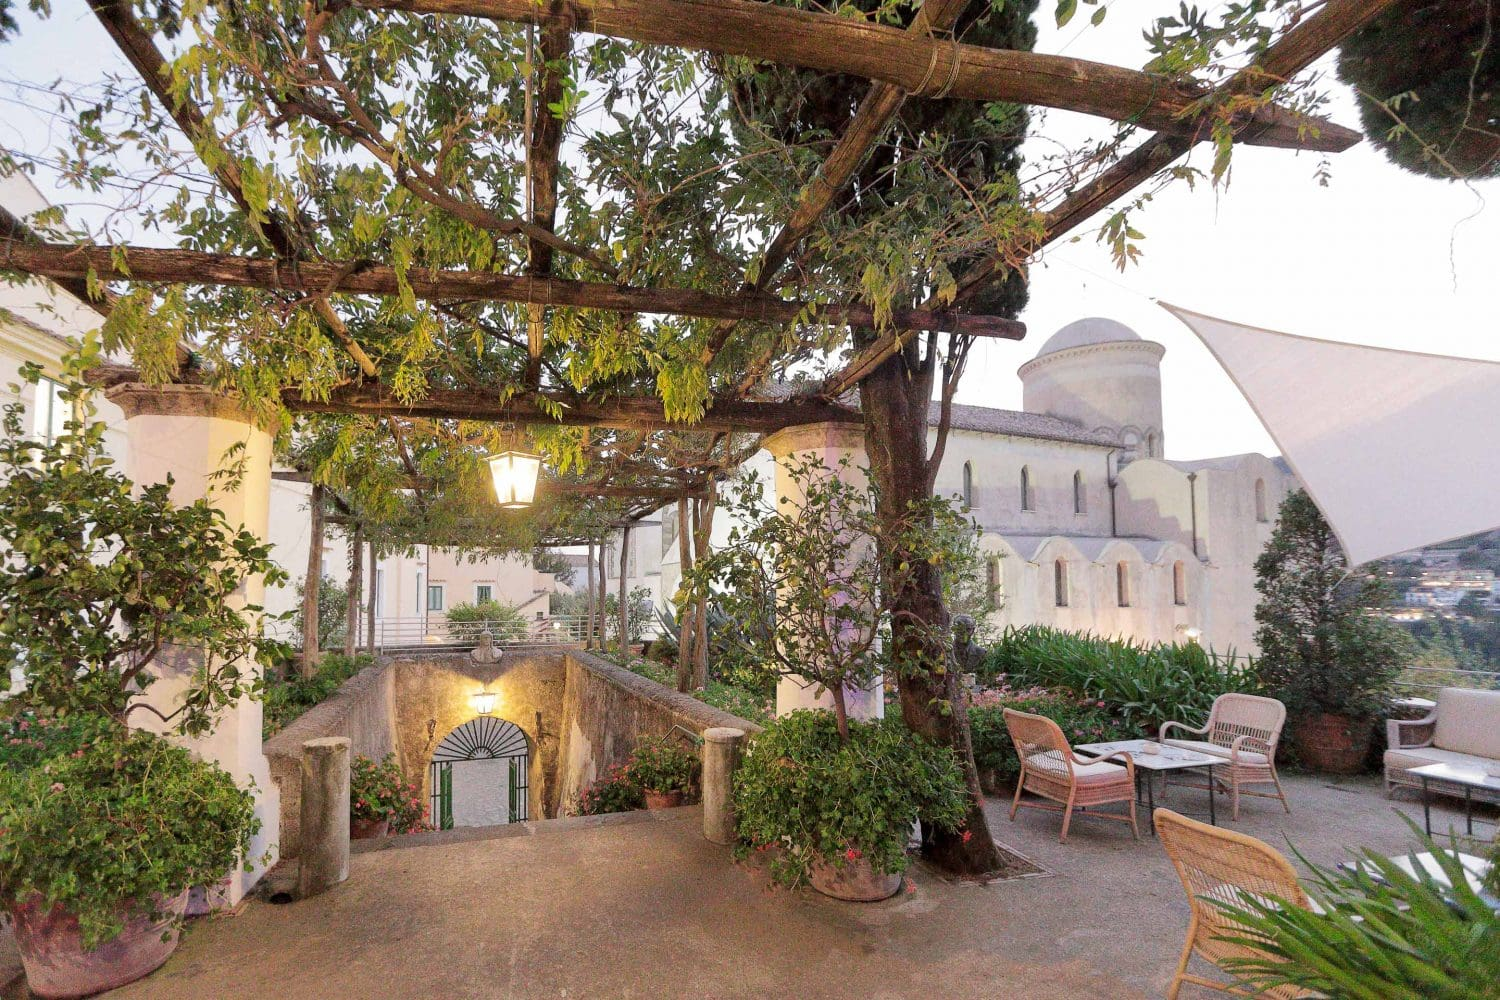 the entrance of the garden of belmond hotel caruso